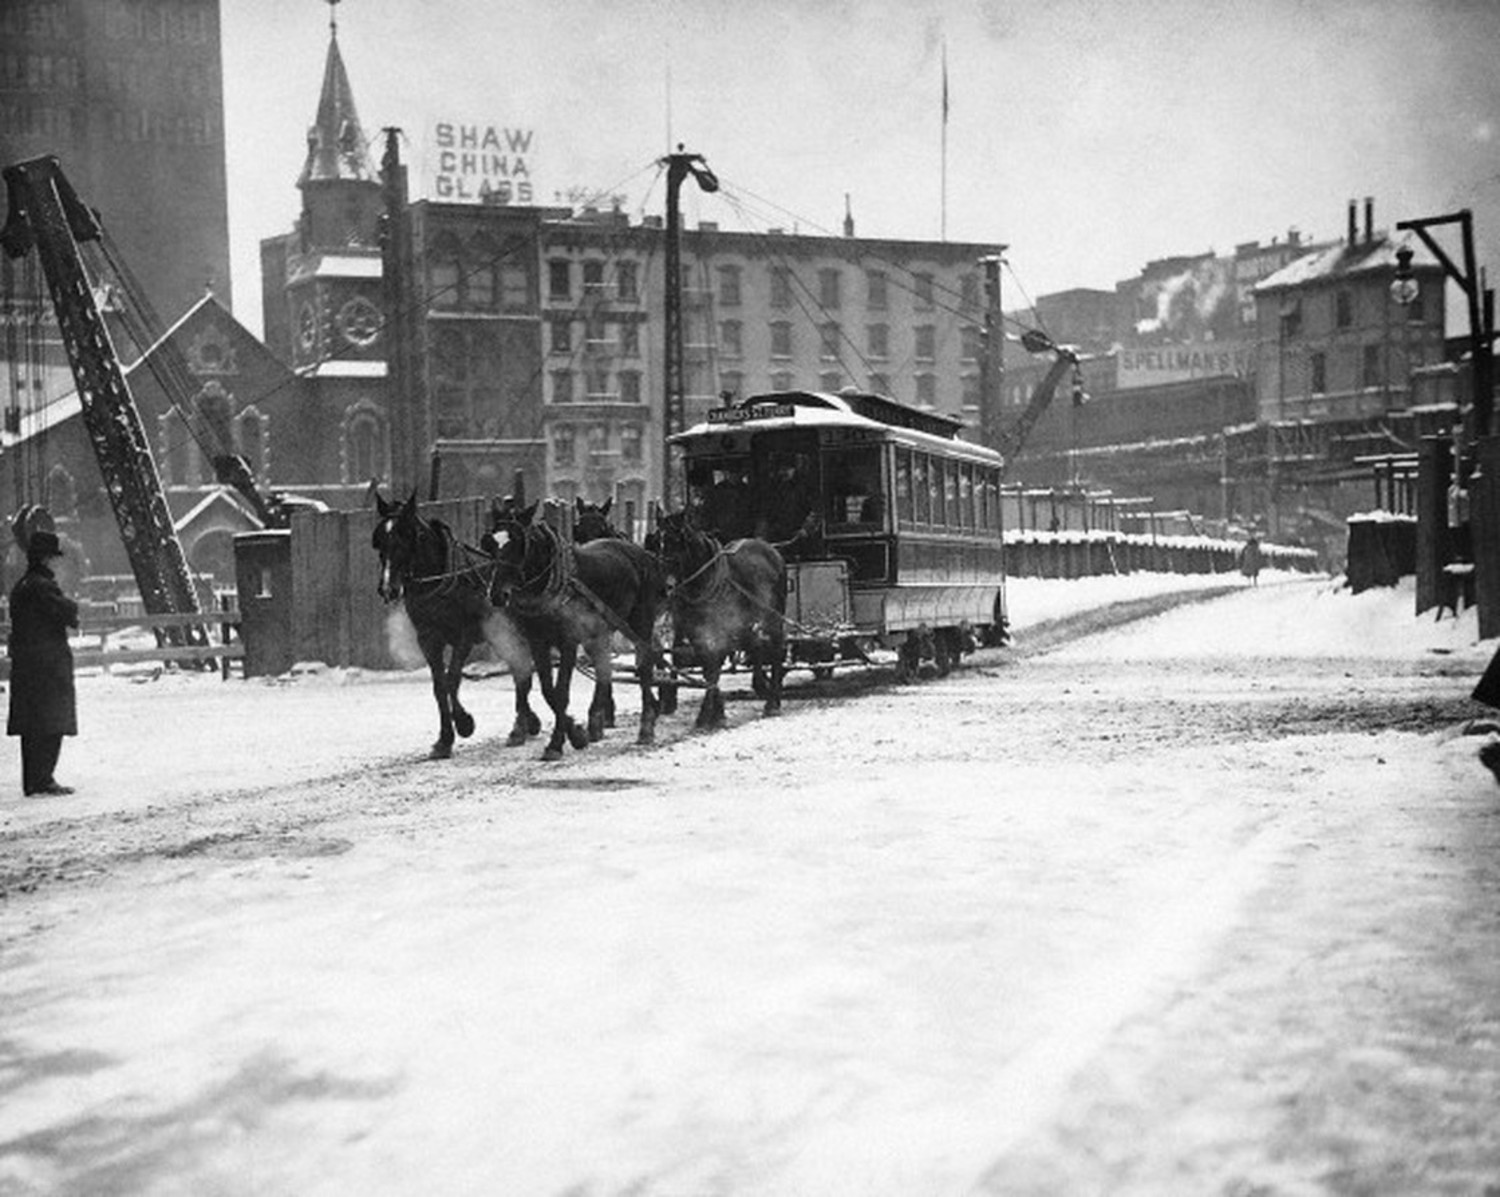 1908 horse drawn trolley trudges through New York's snow covered streets